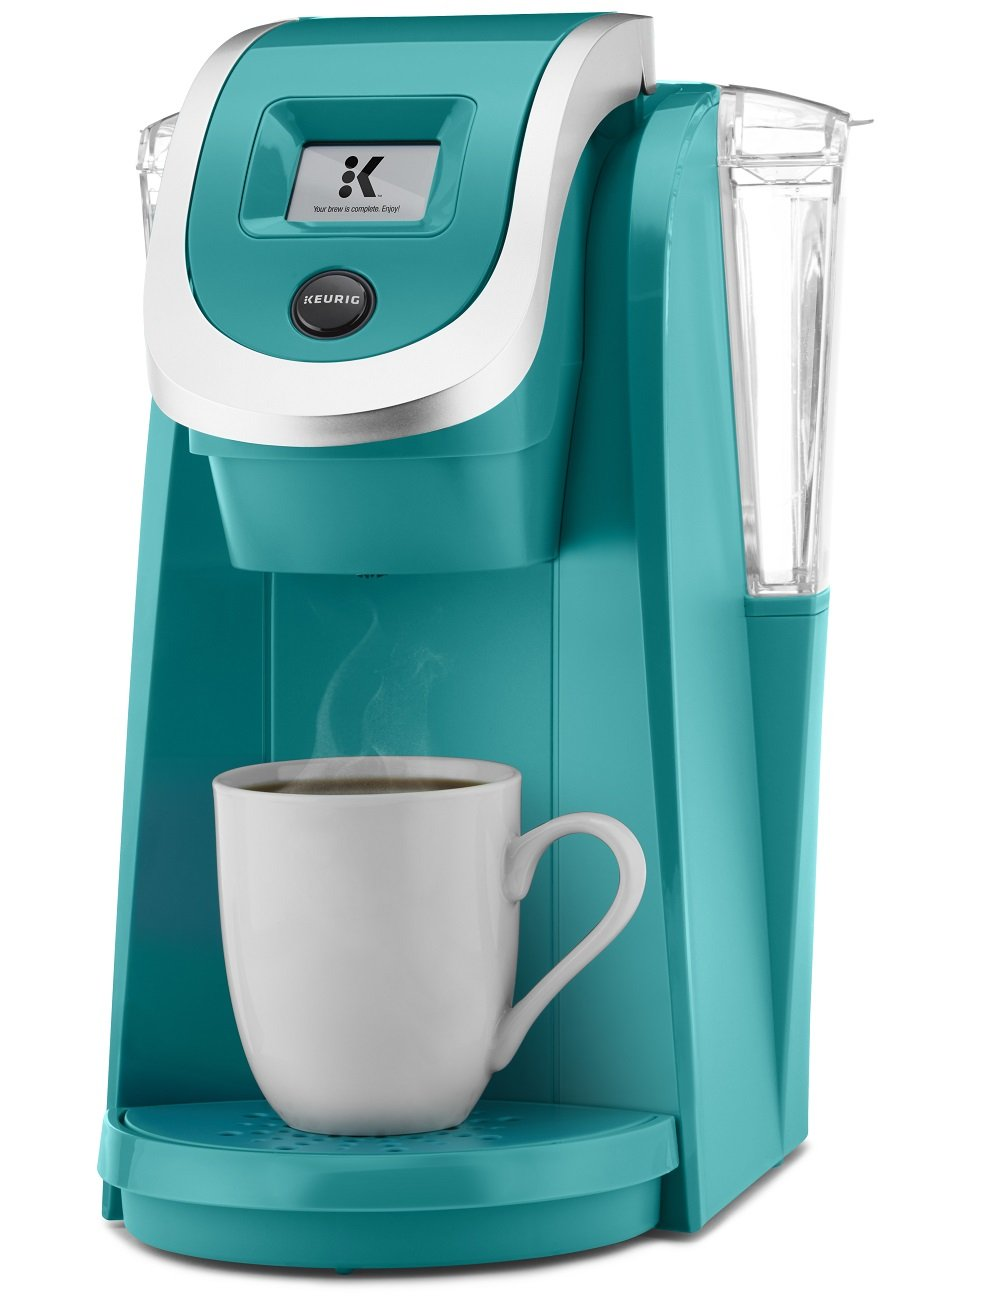 Keurig K250 Single Serve, Programmable K-Cup Pod Coffee Maker with strength control, Turquoise by Keurig (Image #2)